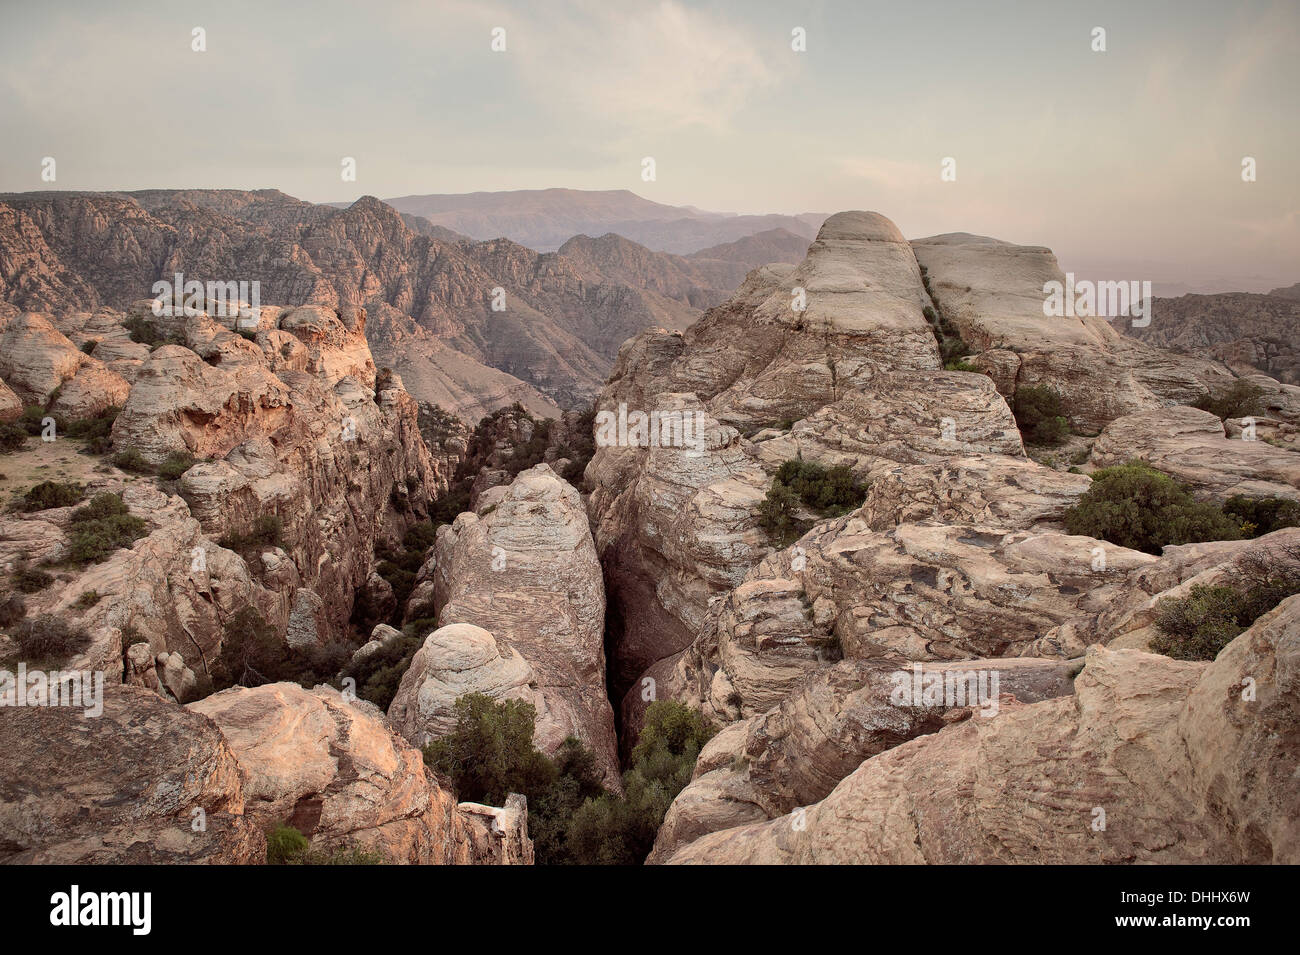 Rock formations at Dana nature reserve, UNESCO world herritage, Dana, Jordan, Middle East, Asia - Stock Image